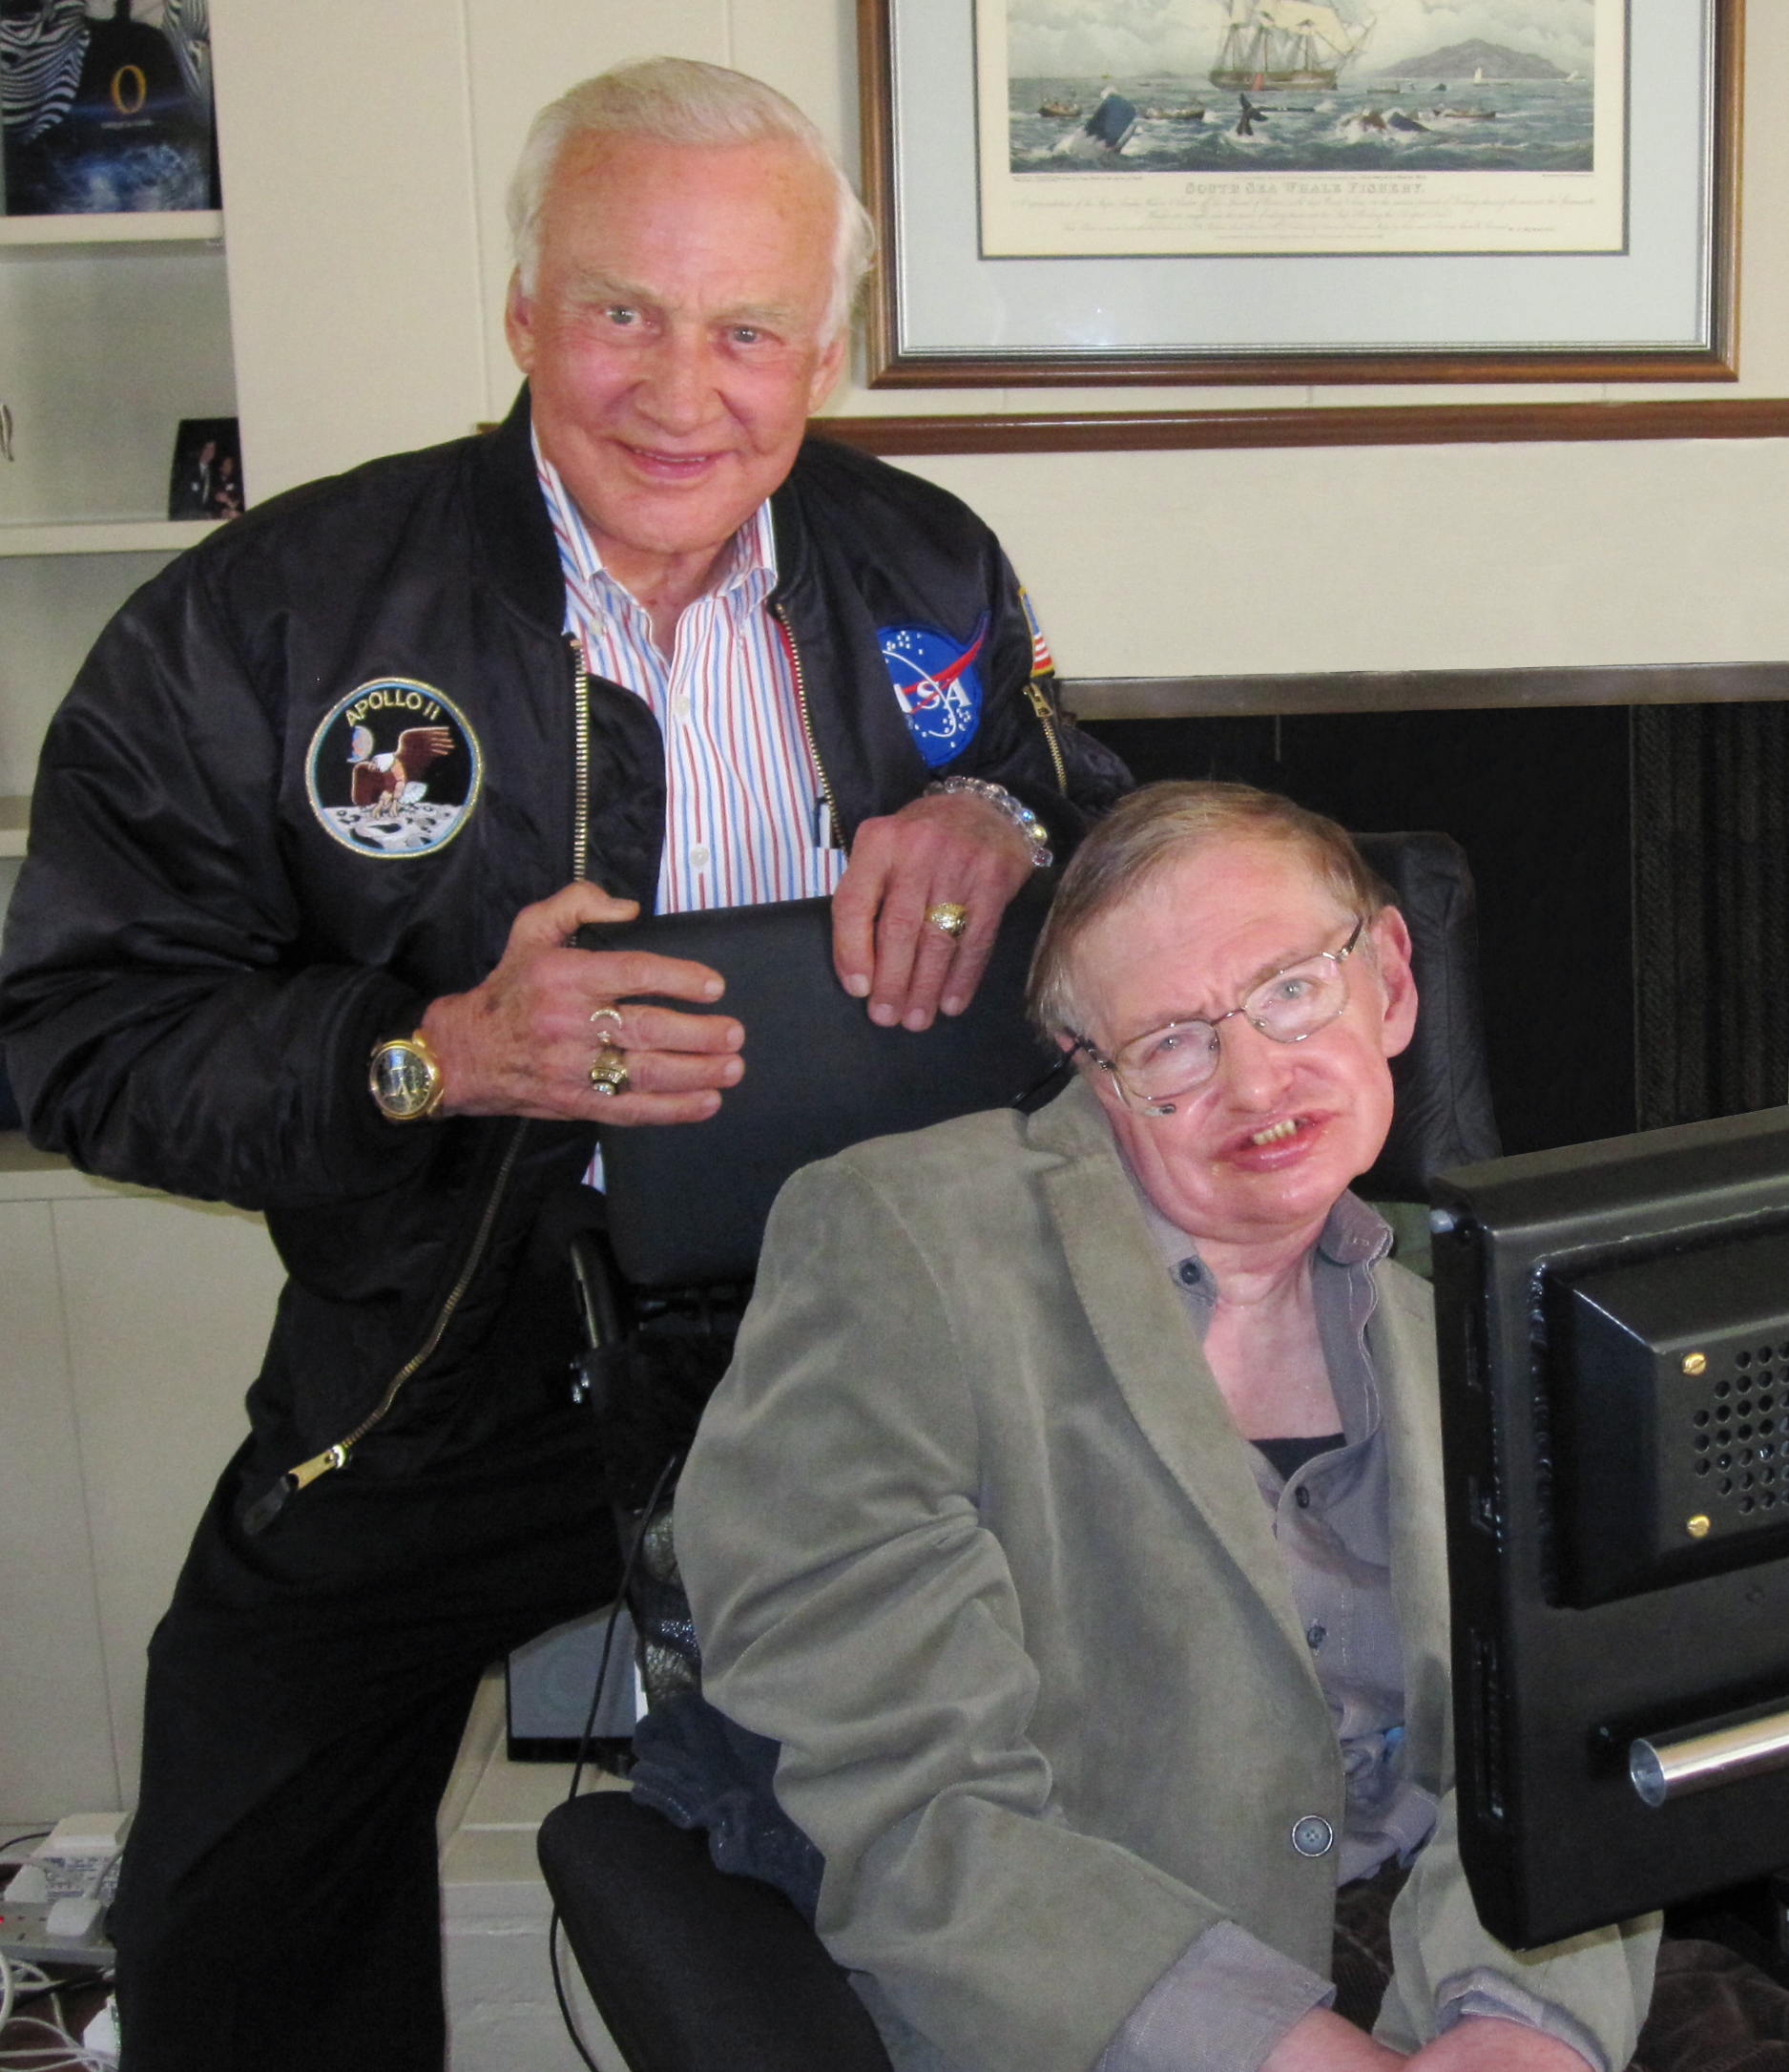 Buzz Aldrin and Stephen Hawking team up